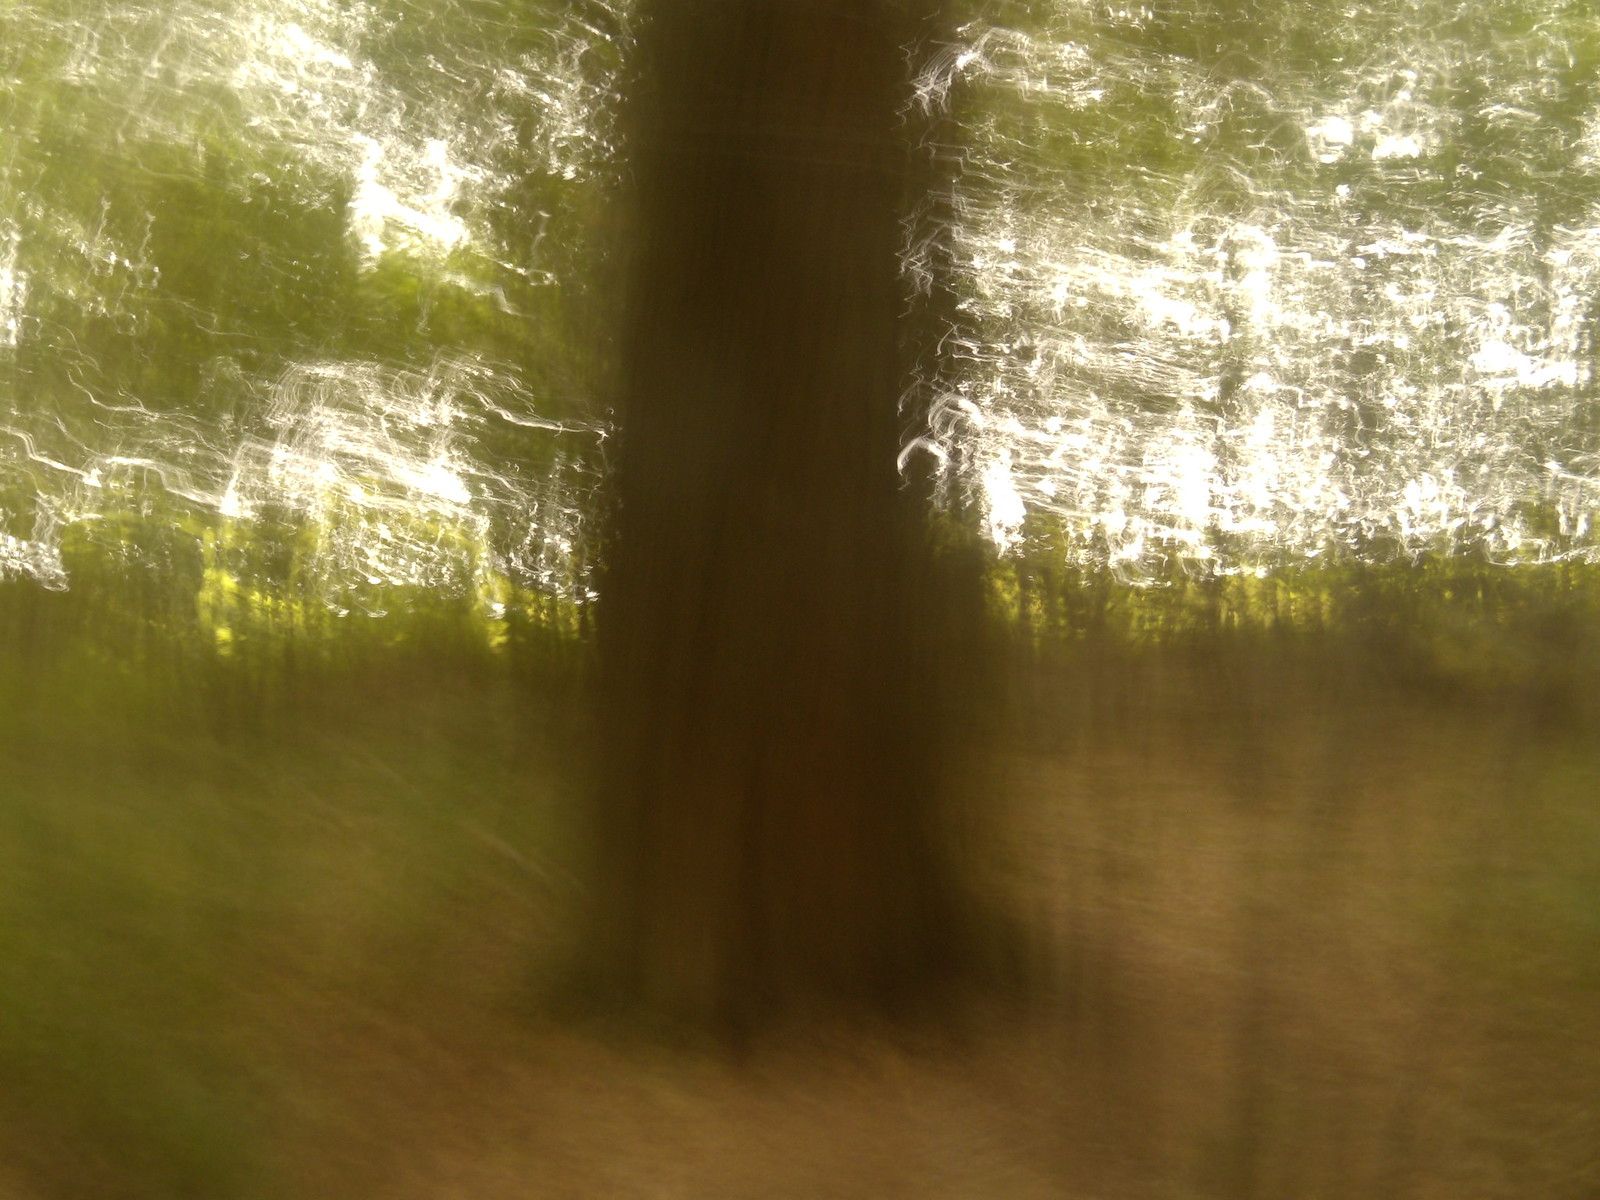 Tree in a wood Hassocks to Brighton